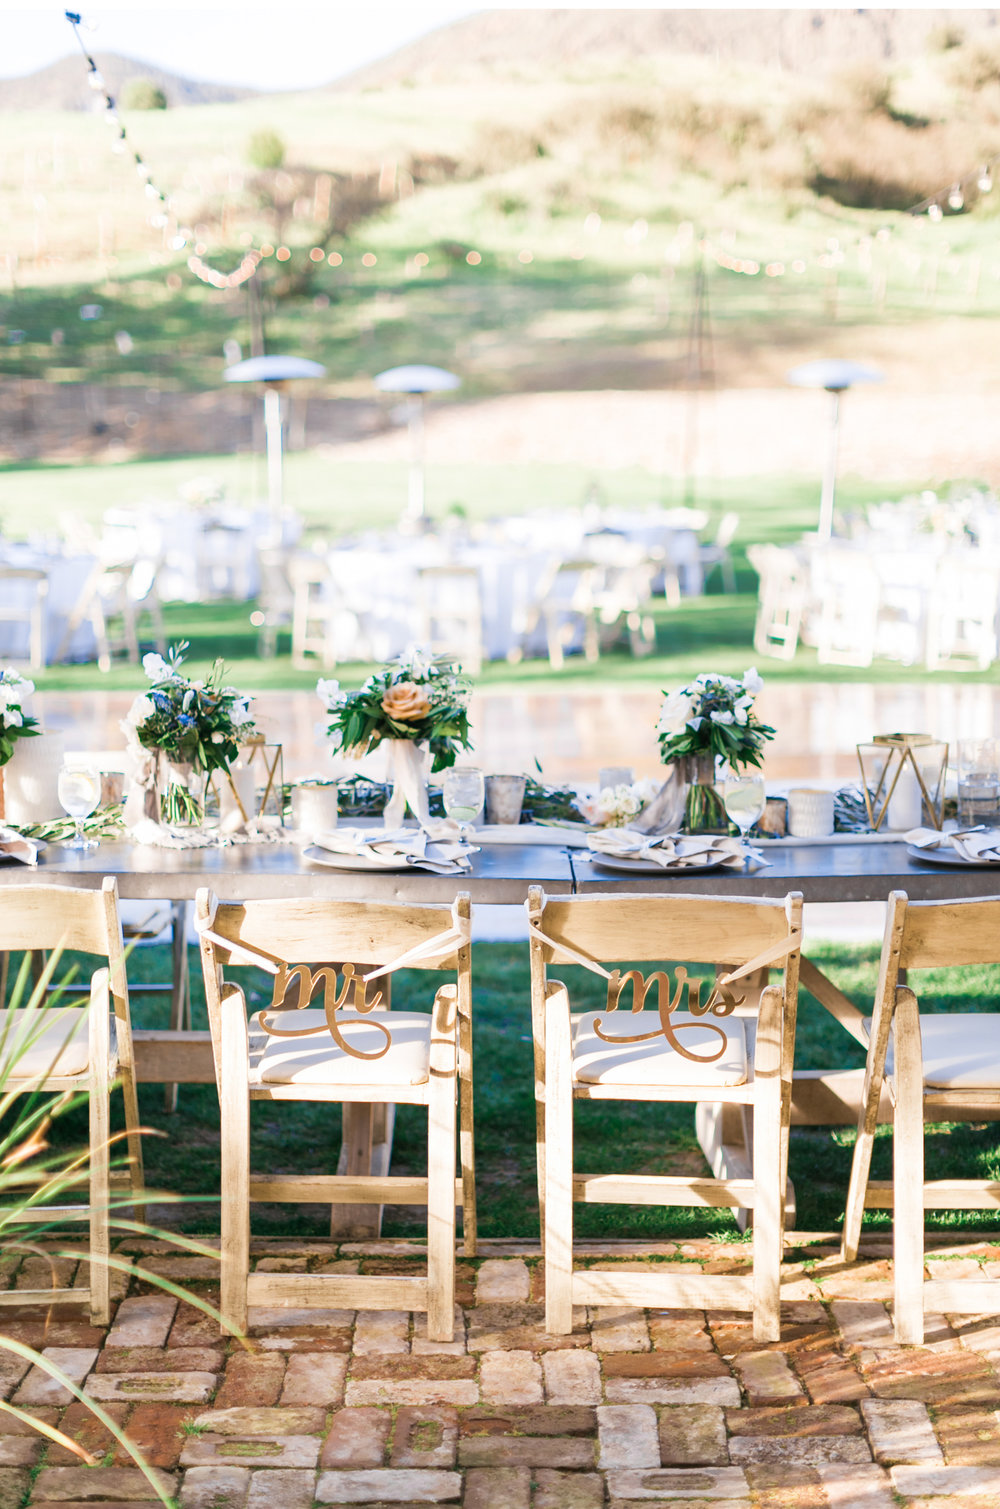 Triunfo-Creek-Malibu-Wedding-Natalie-Schutt-Photography-Couture-Events-Style-Me-Pretty_14.jpg